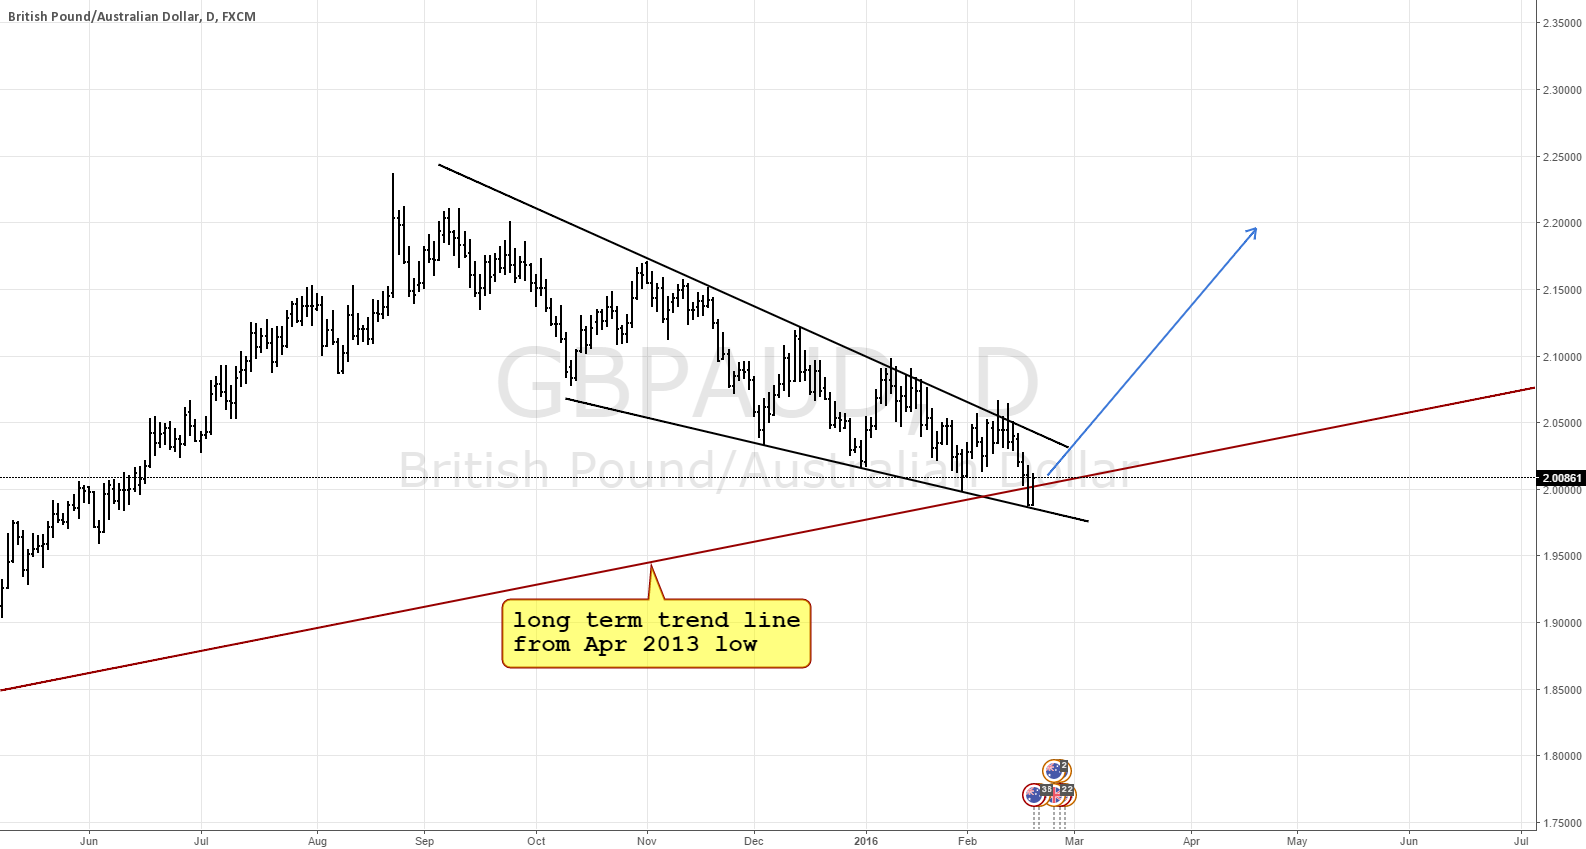 Finally the time to go long GBPAUD?